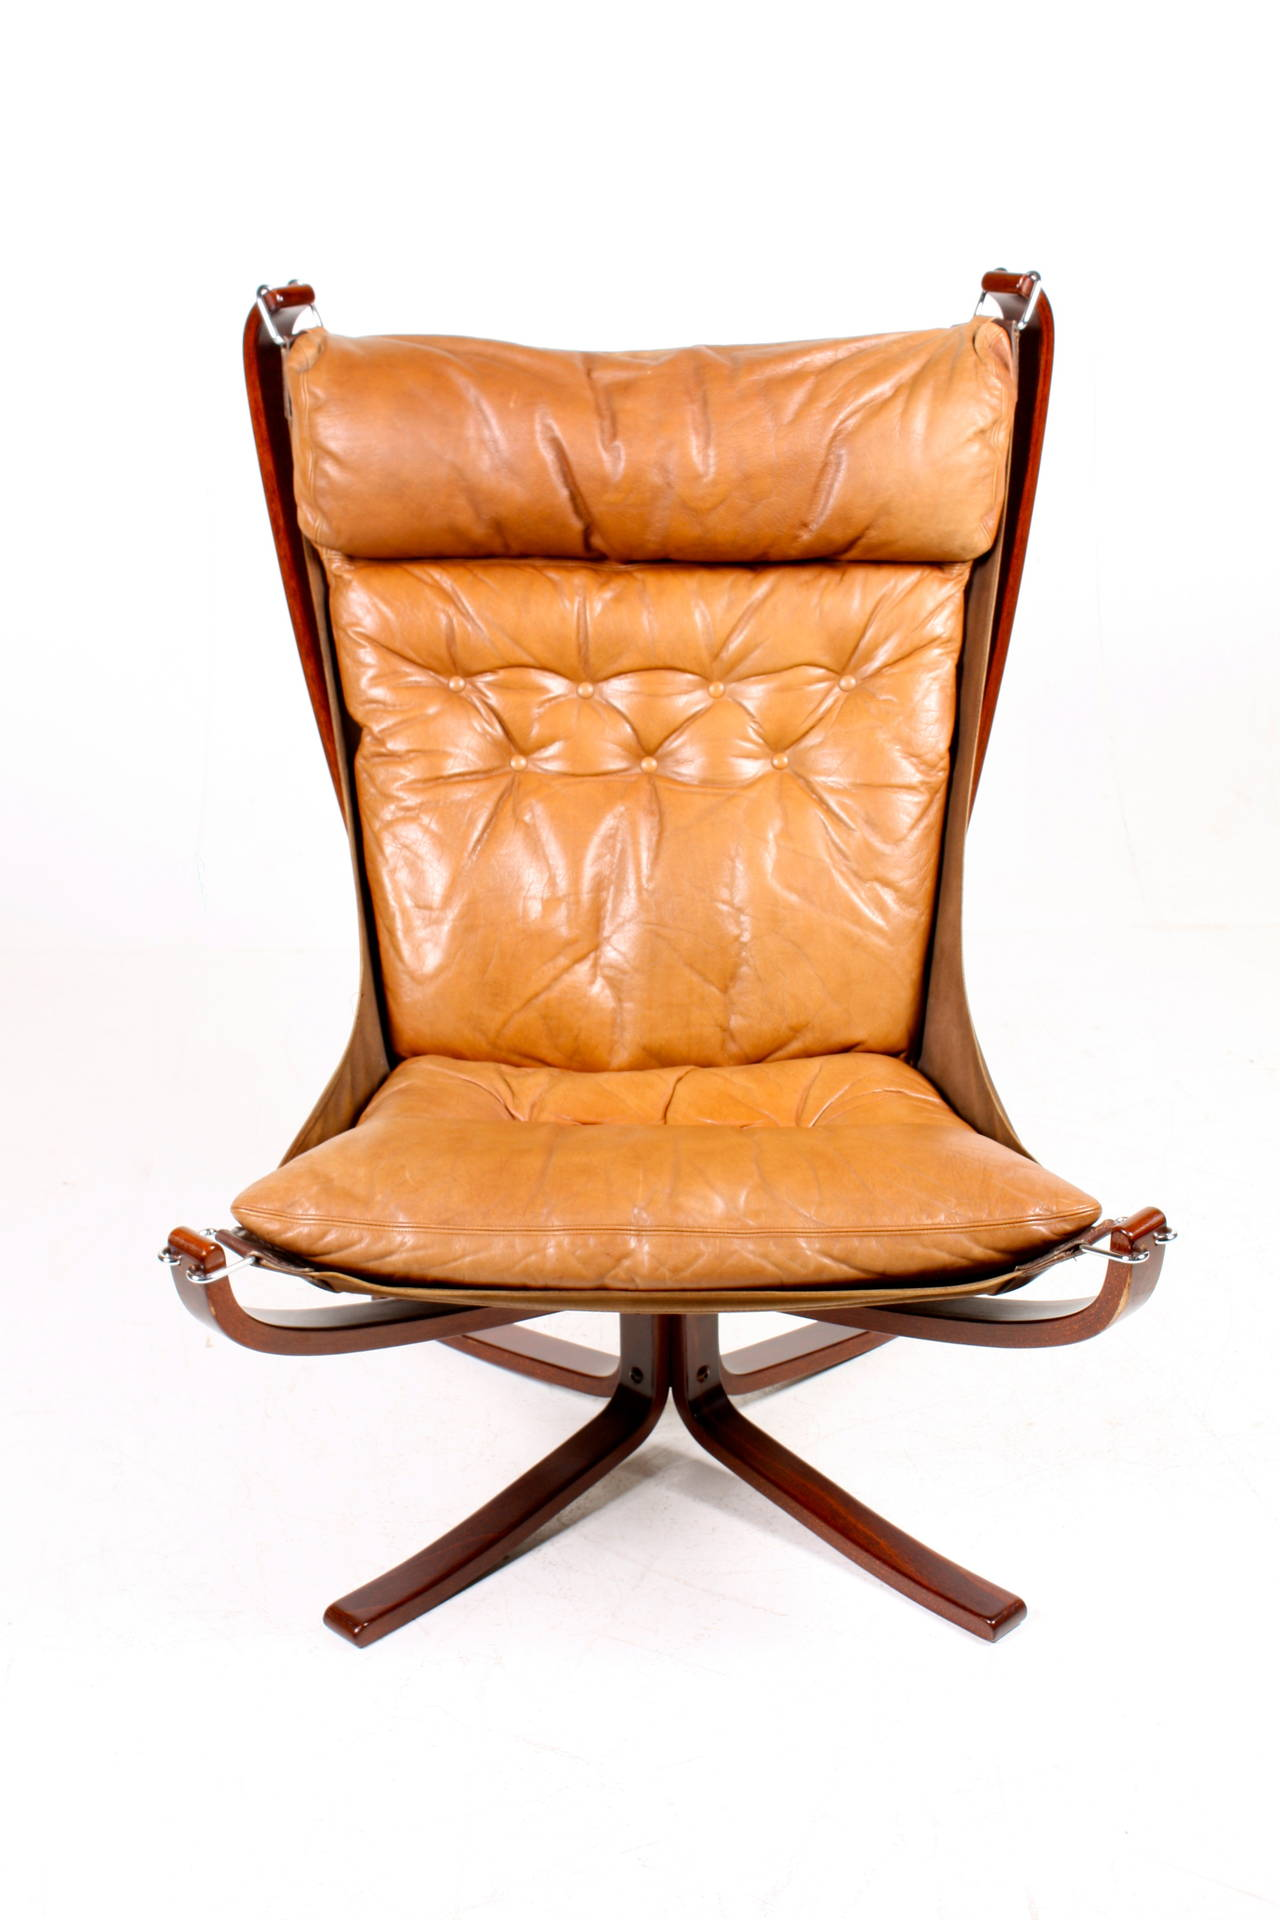 Original Highback Falcon Chair And Ottoman For Sale At 1stdibs